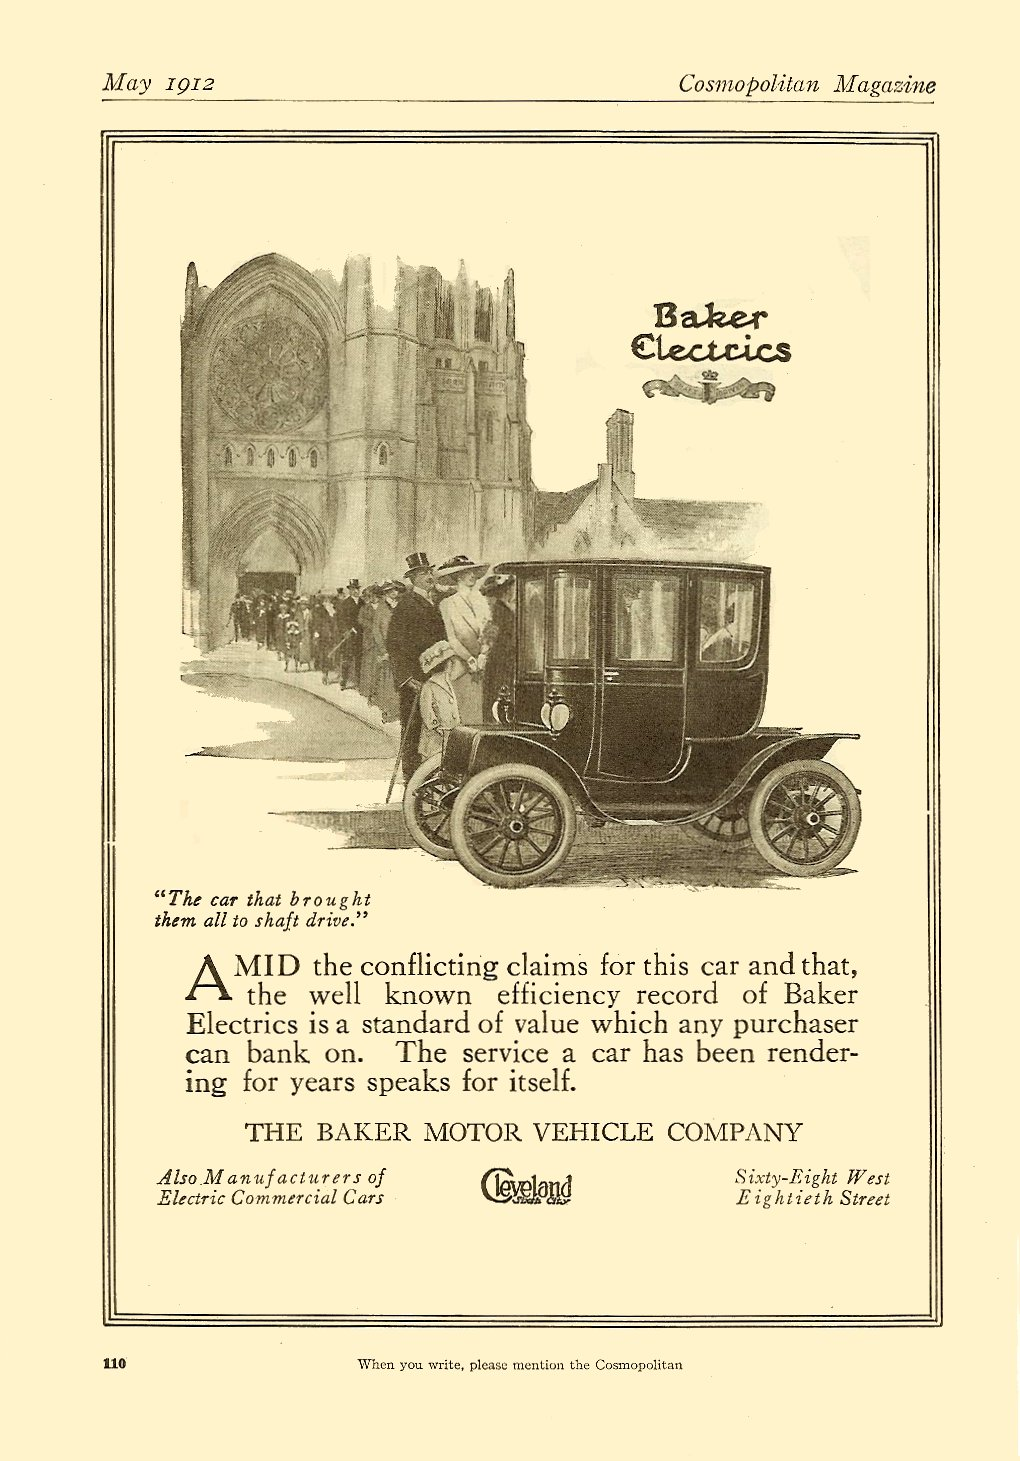 1912 5 BAKER Baker Electrics The Baker Motor Vehicle Company Cleveland, Ohio May 1912 Cosmopolitan Magazine 6.75″x9.75″ page 110